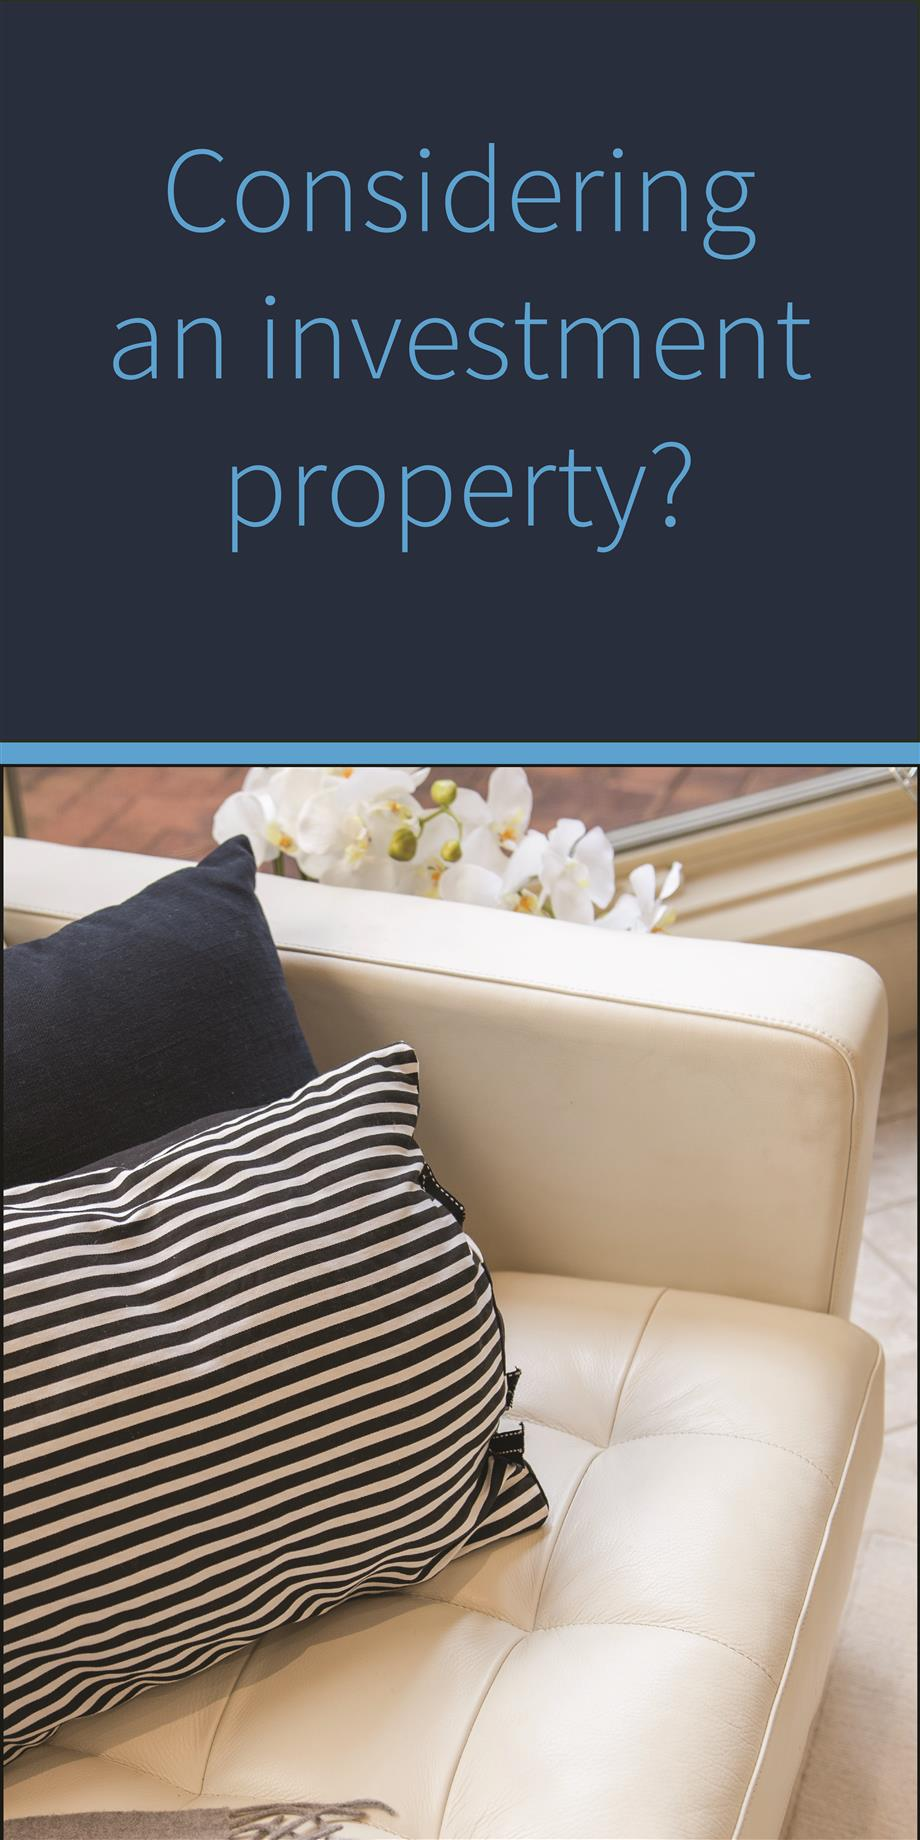 Considering an investment property?